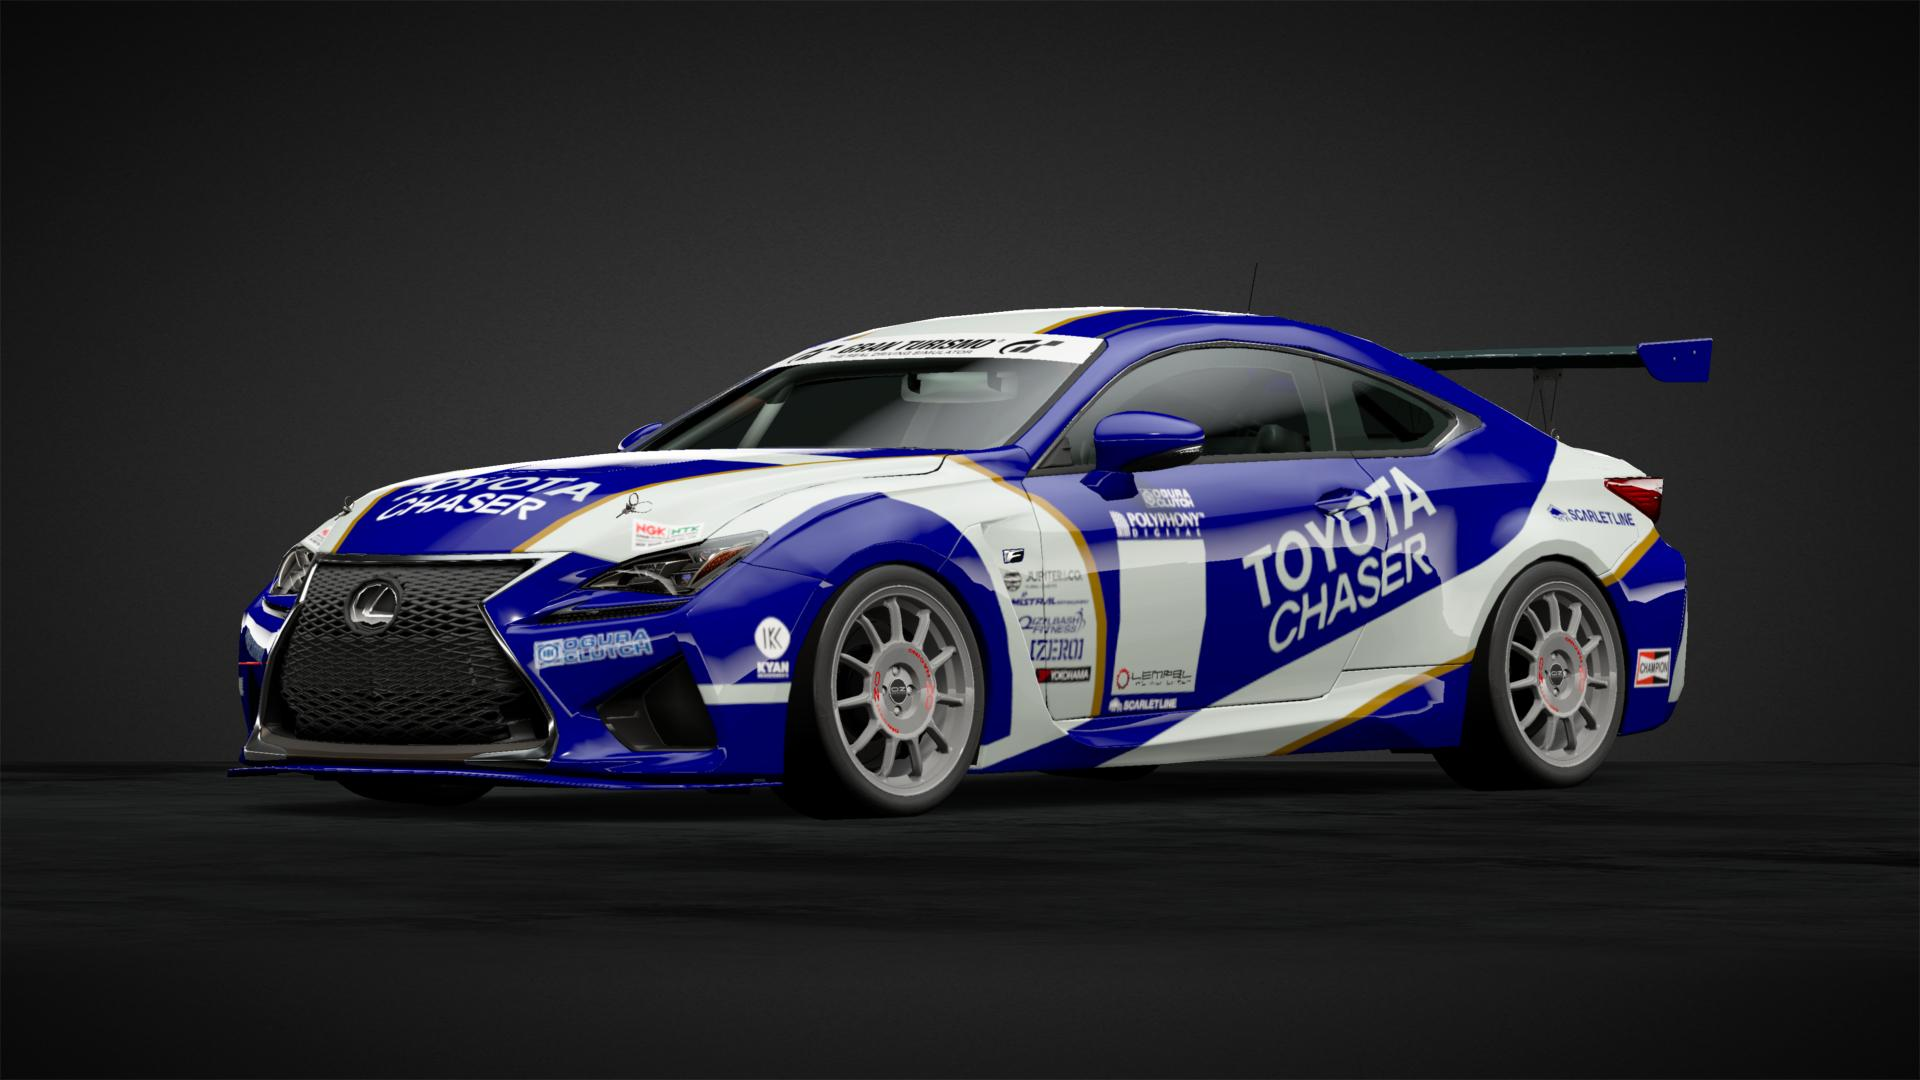 Gt1 toyota chaser race mod 2 car livery by theblackheadcrab community gran turismo sport